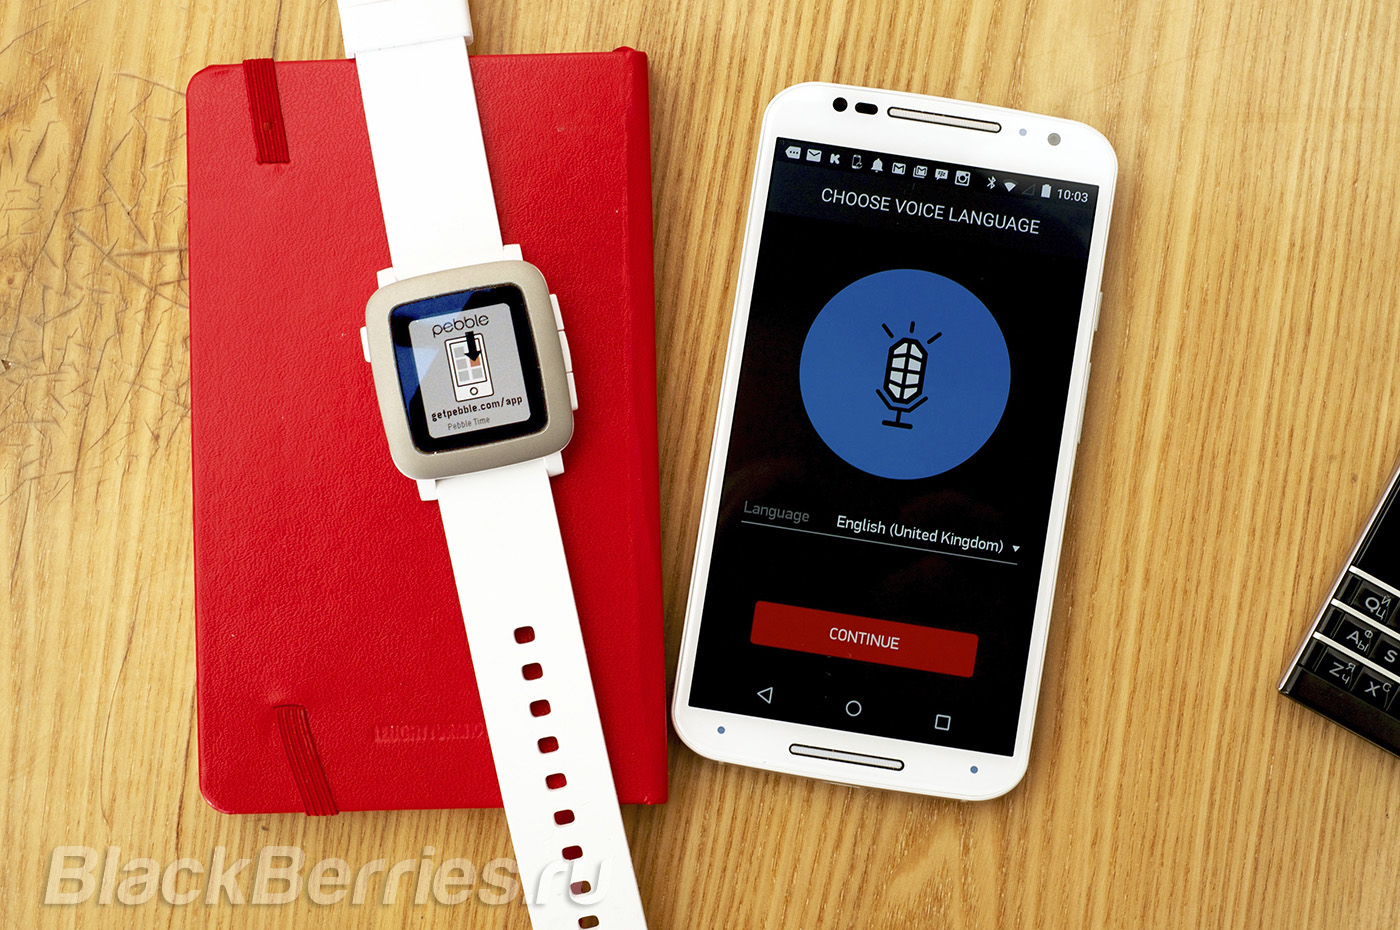 BlackBerry-Passport-Pebble-Time-31